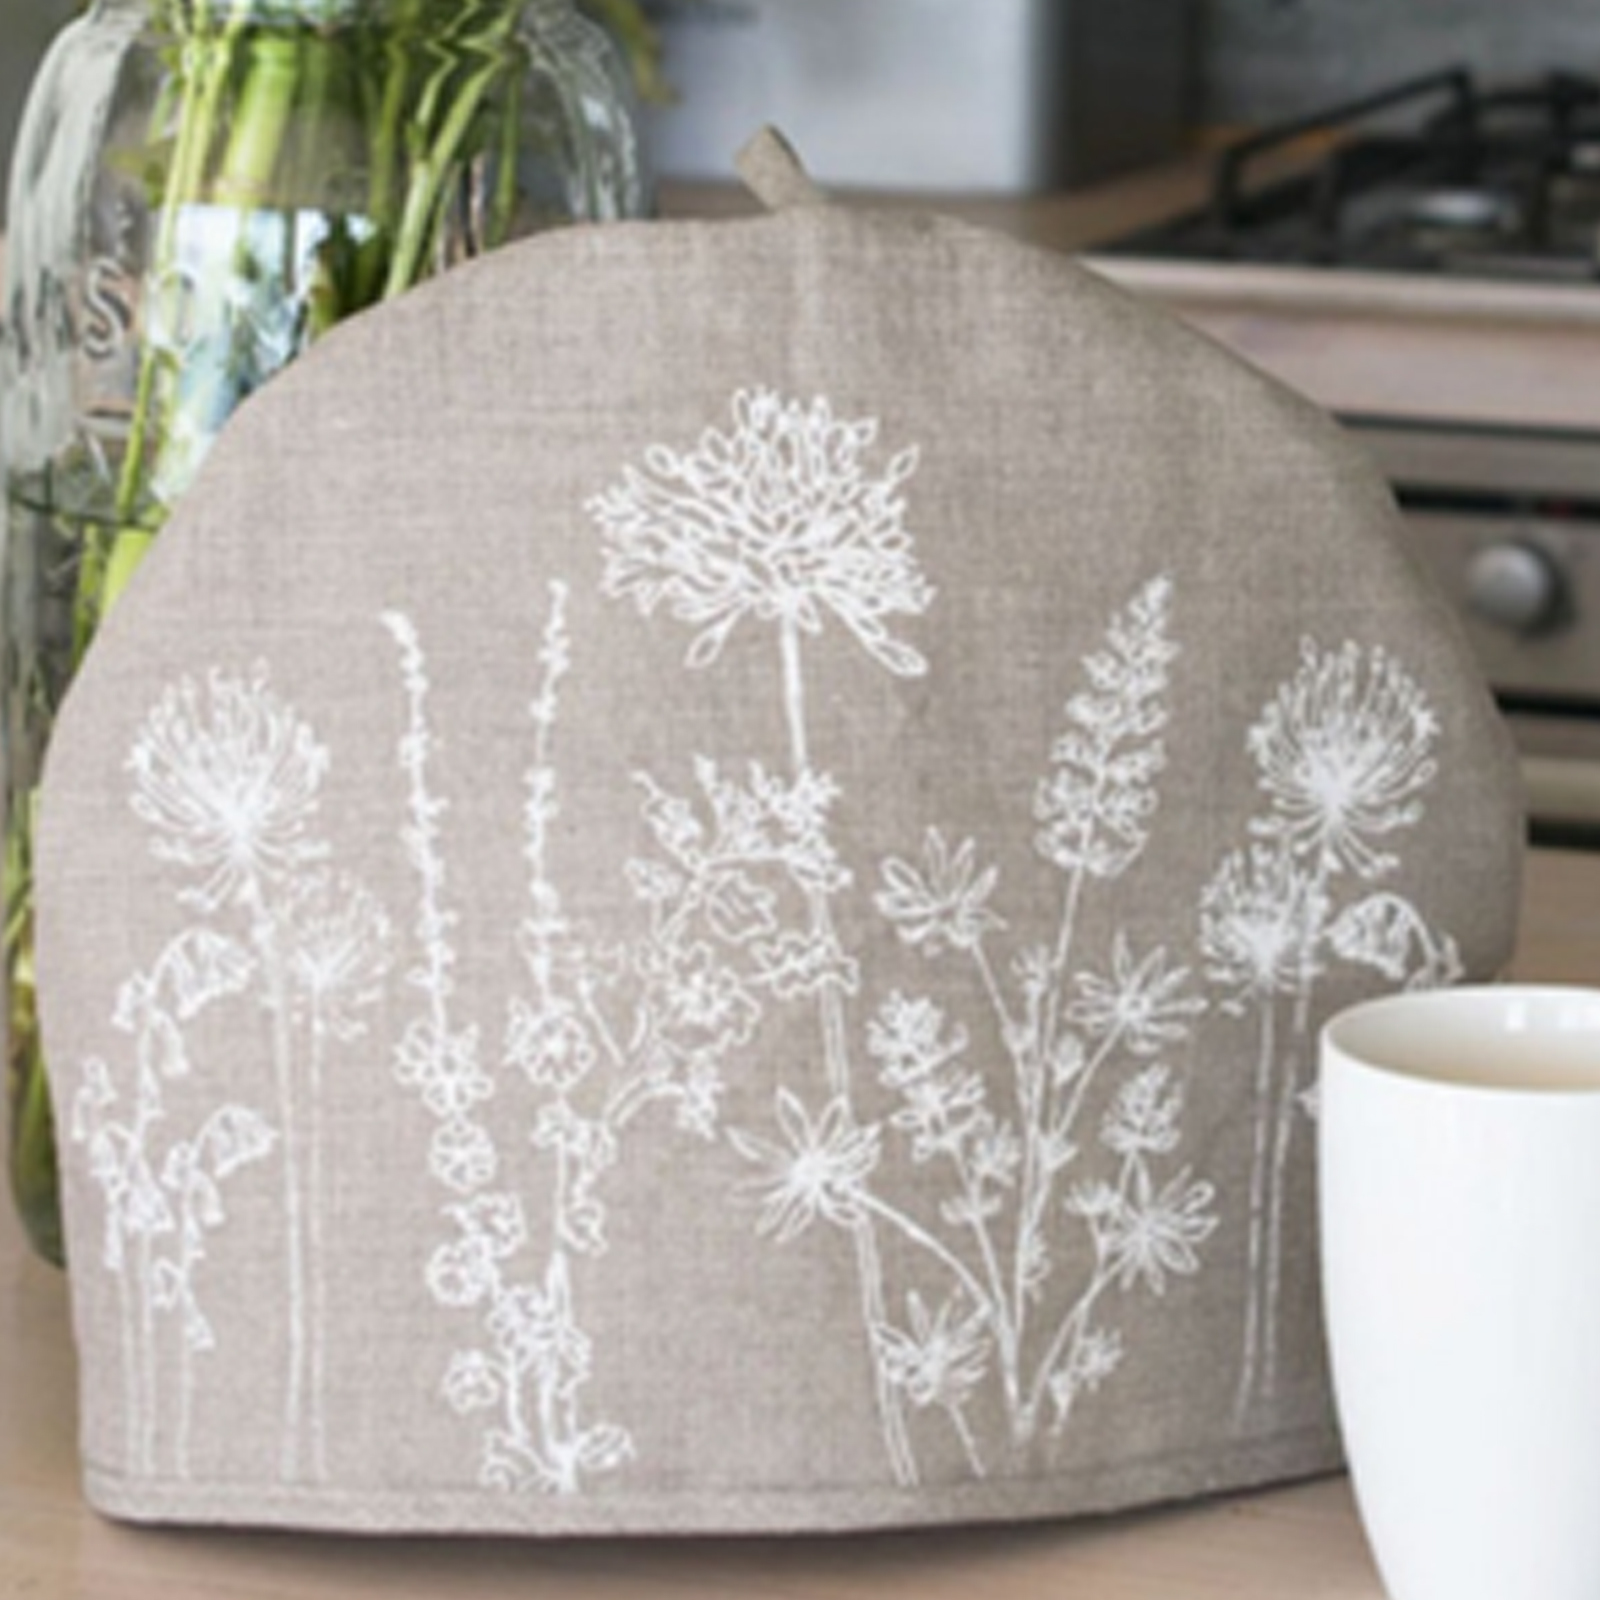 Tea Cosy - Hand Printed Linen in Natural - Country Garden Collection by Helen Round